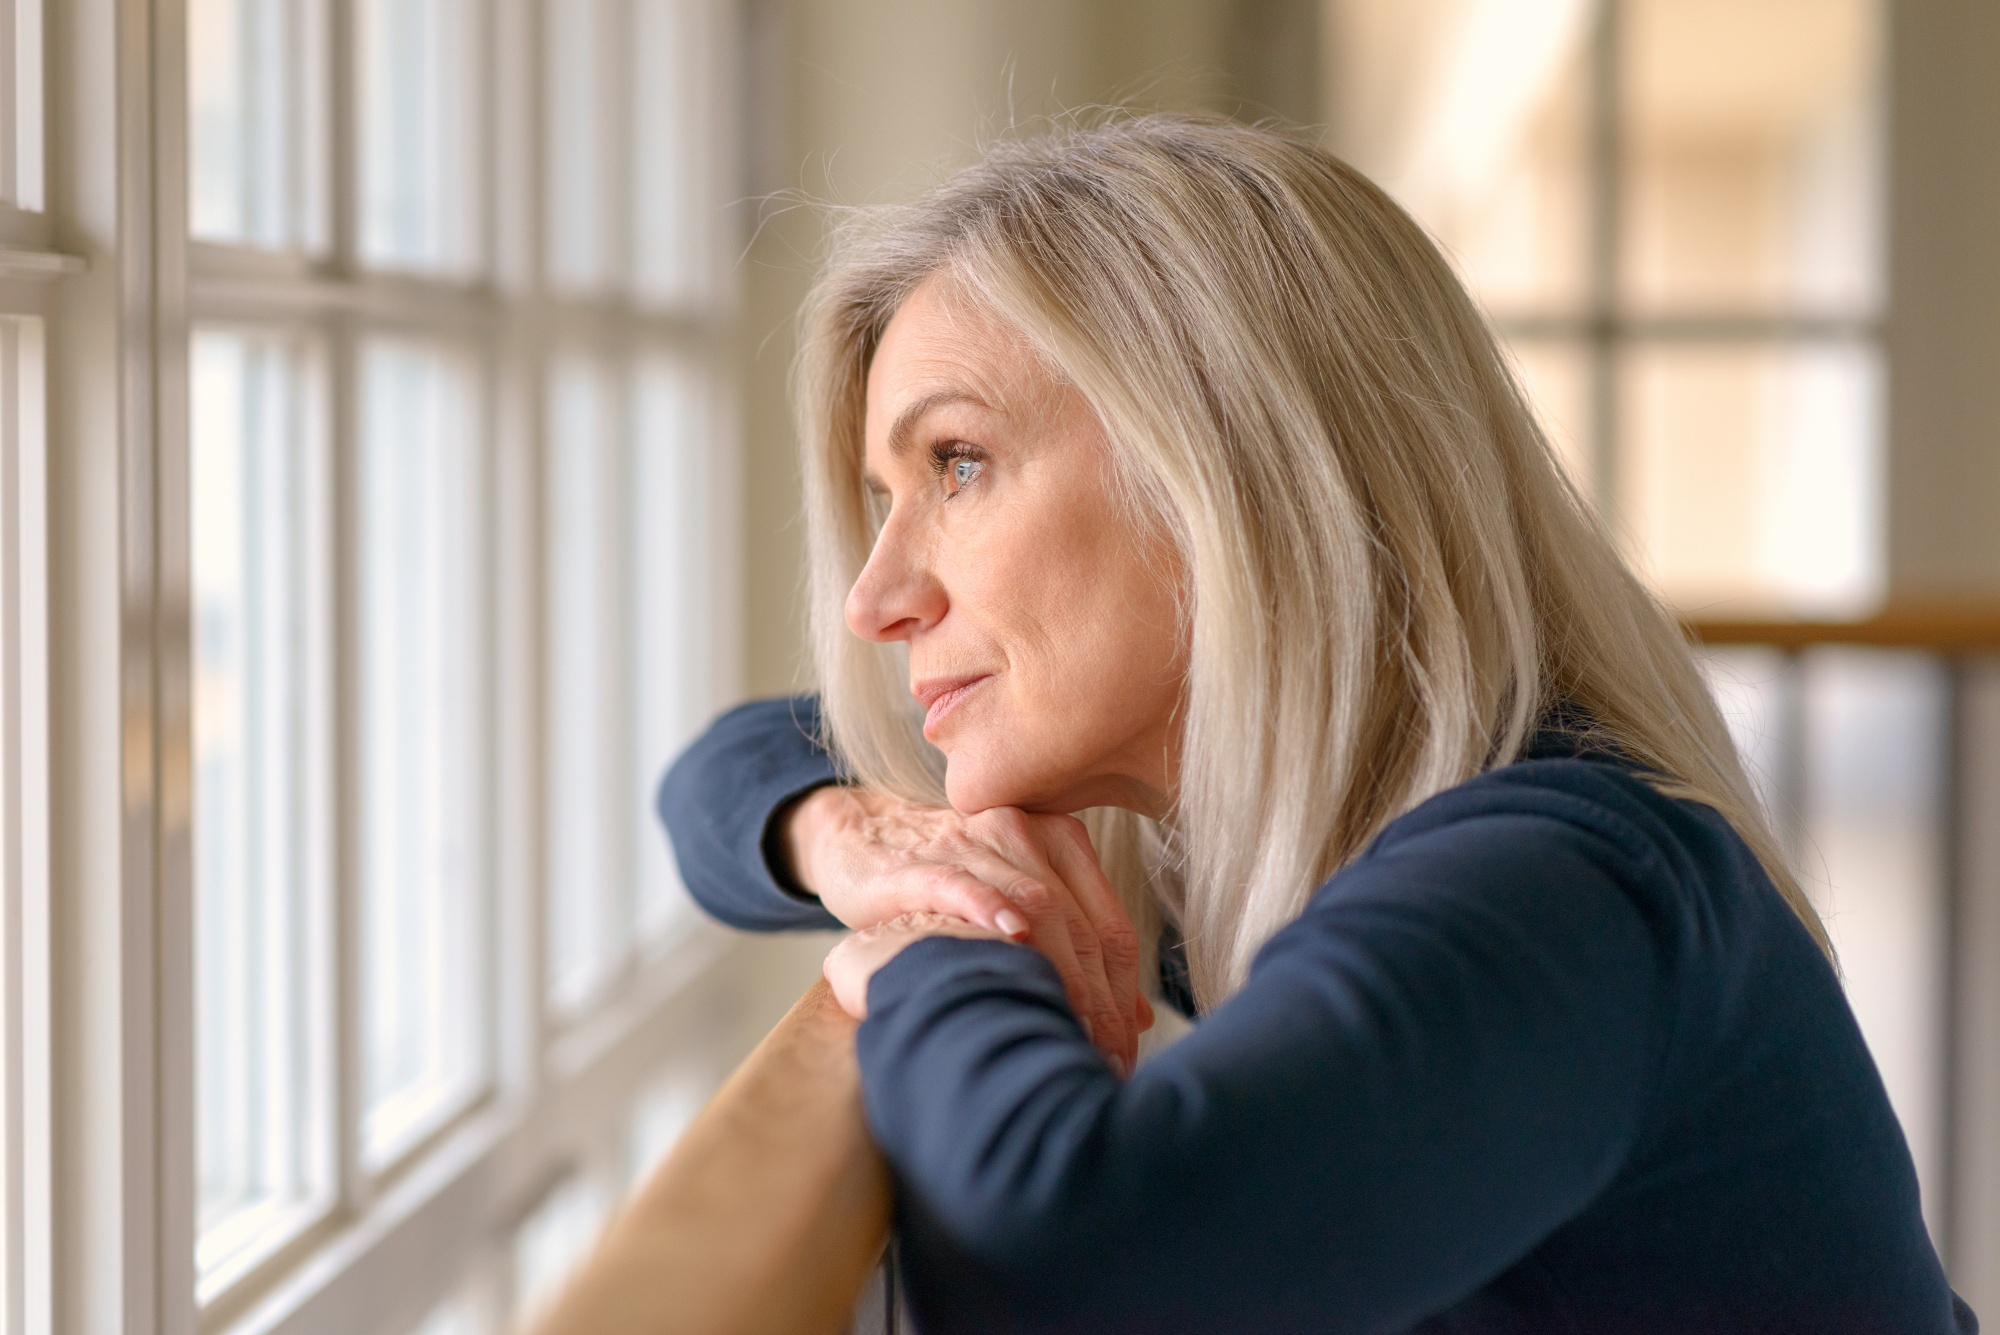 Embrace negative thoughts and turn them into joy, Middle-aged blonde woman in blue shirt looking out window a little sad